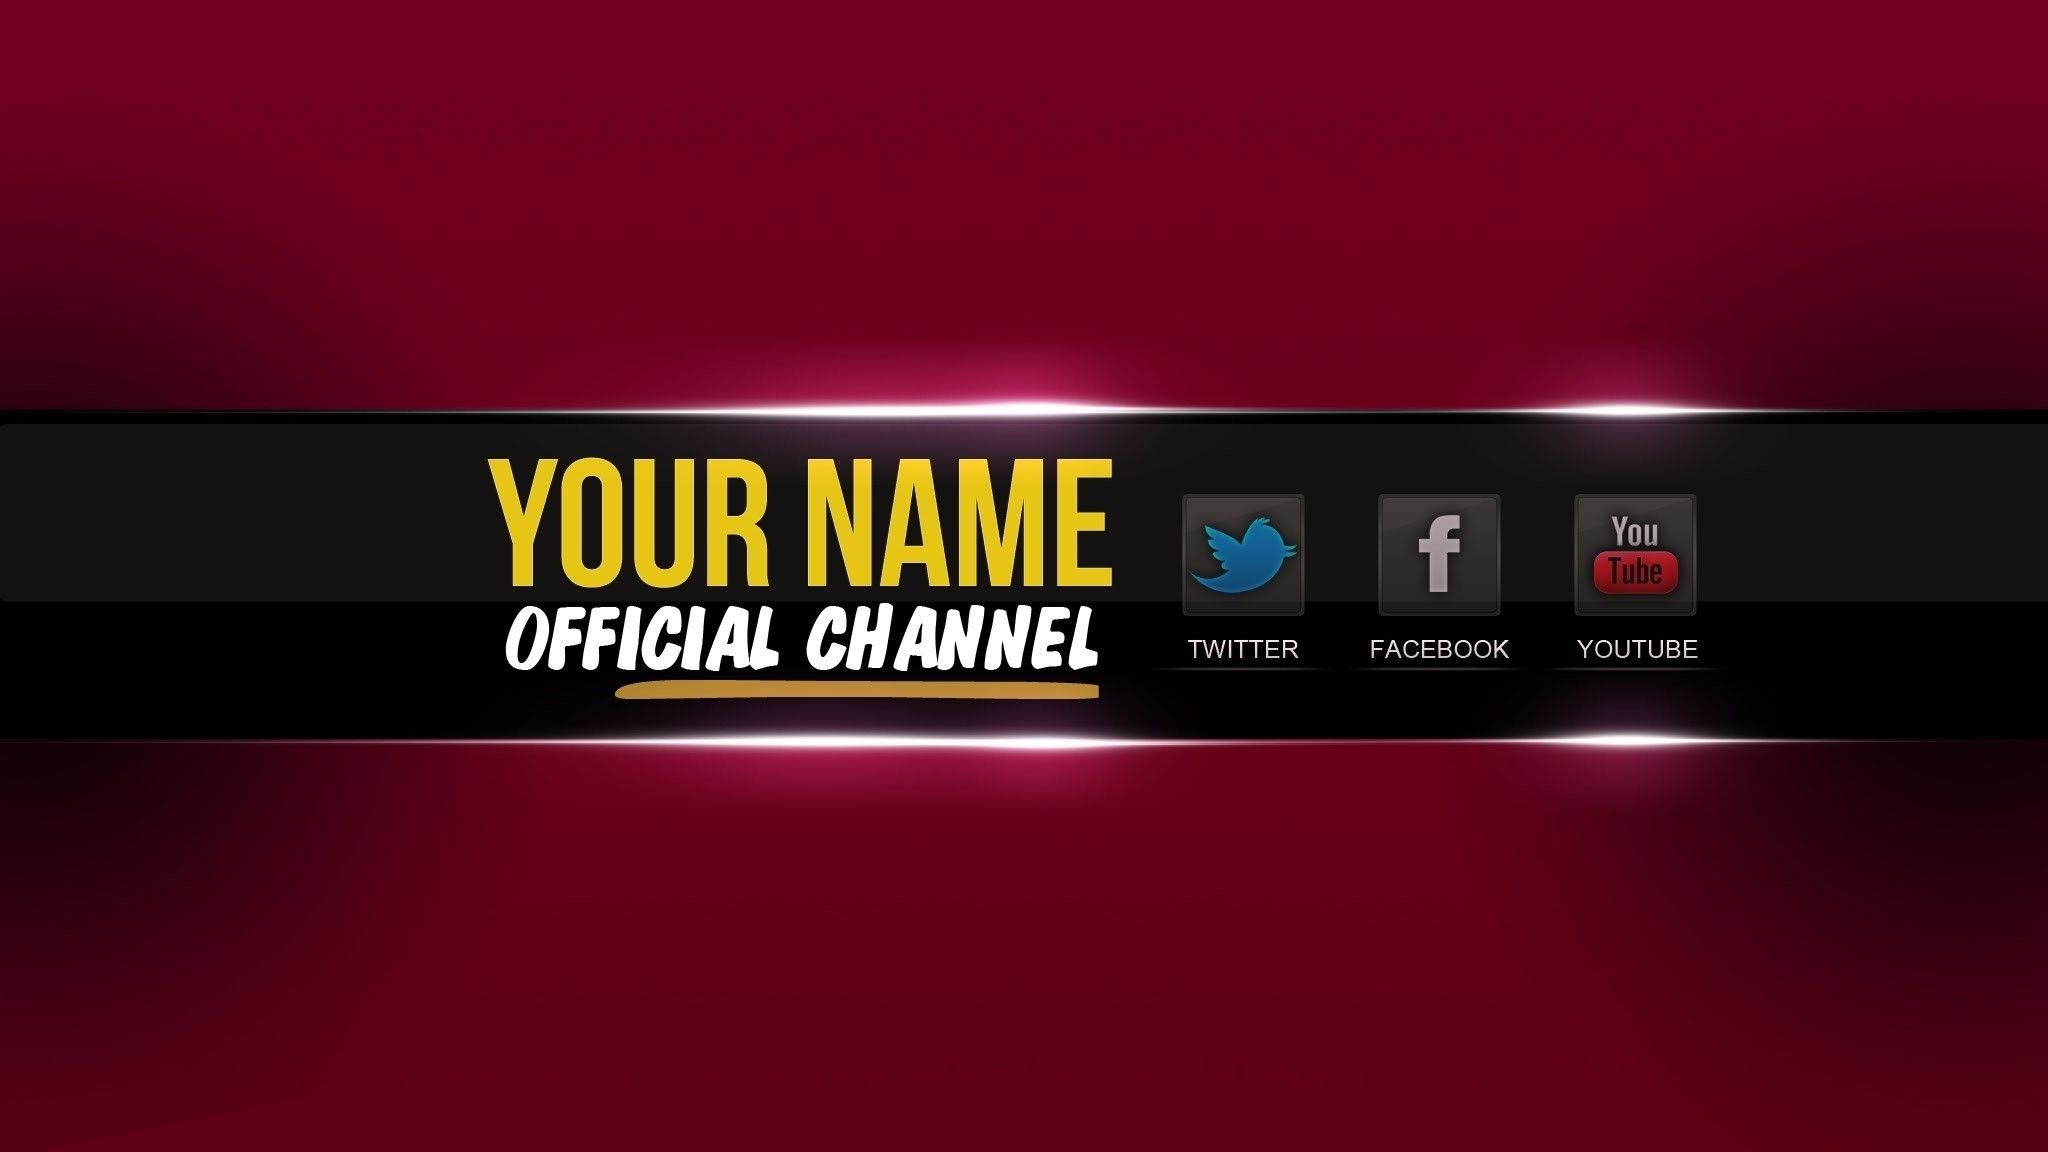 2048x1152 Youtube Banner Template Psd Cyberuse For Banner